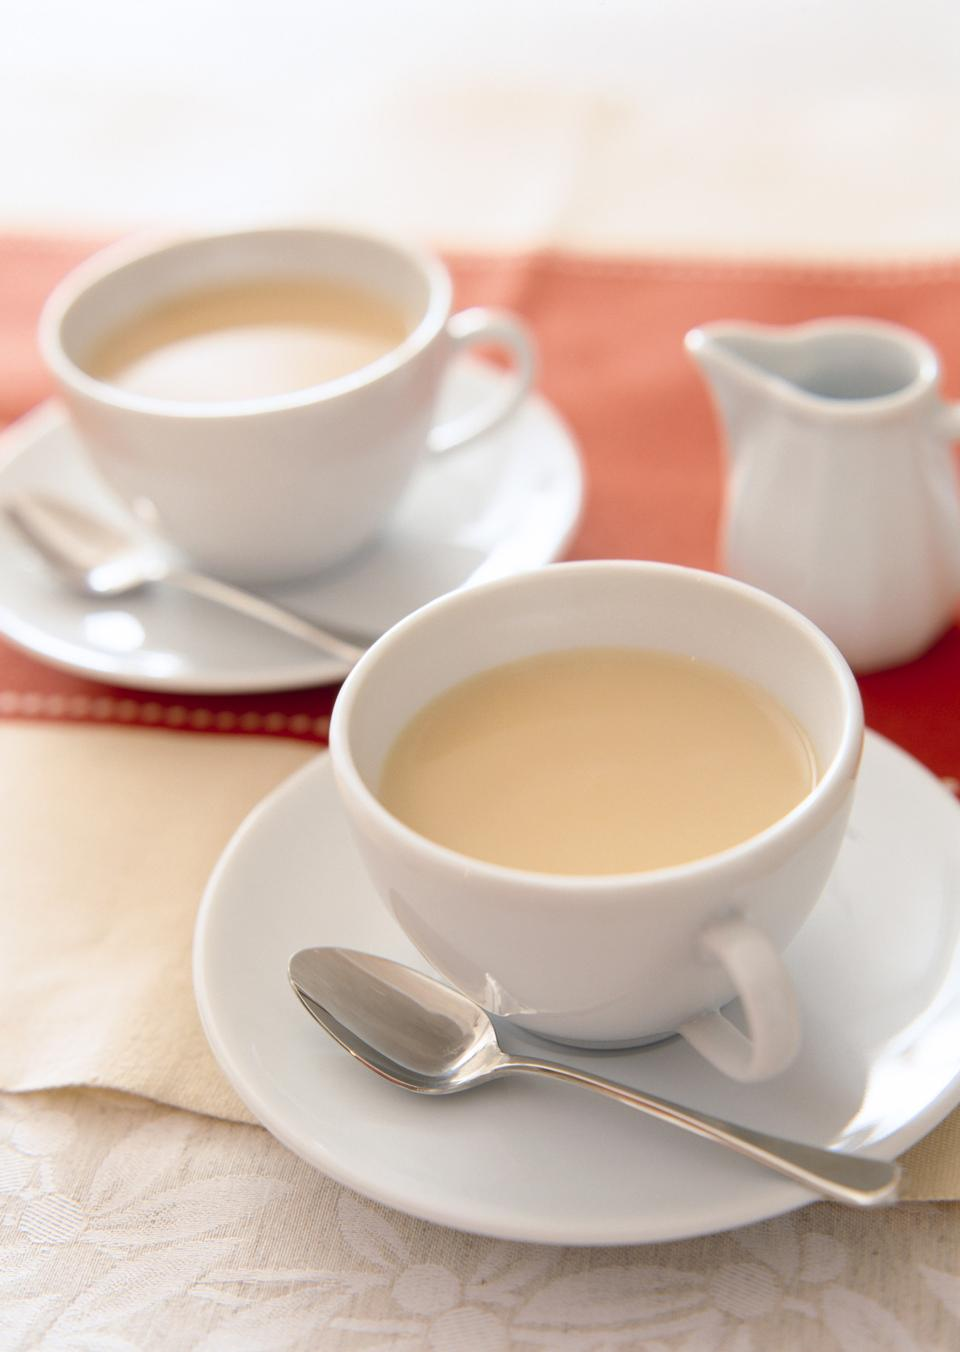 White china cup of tea with milk